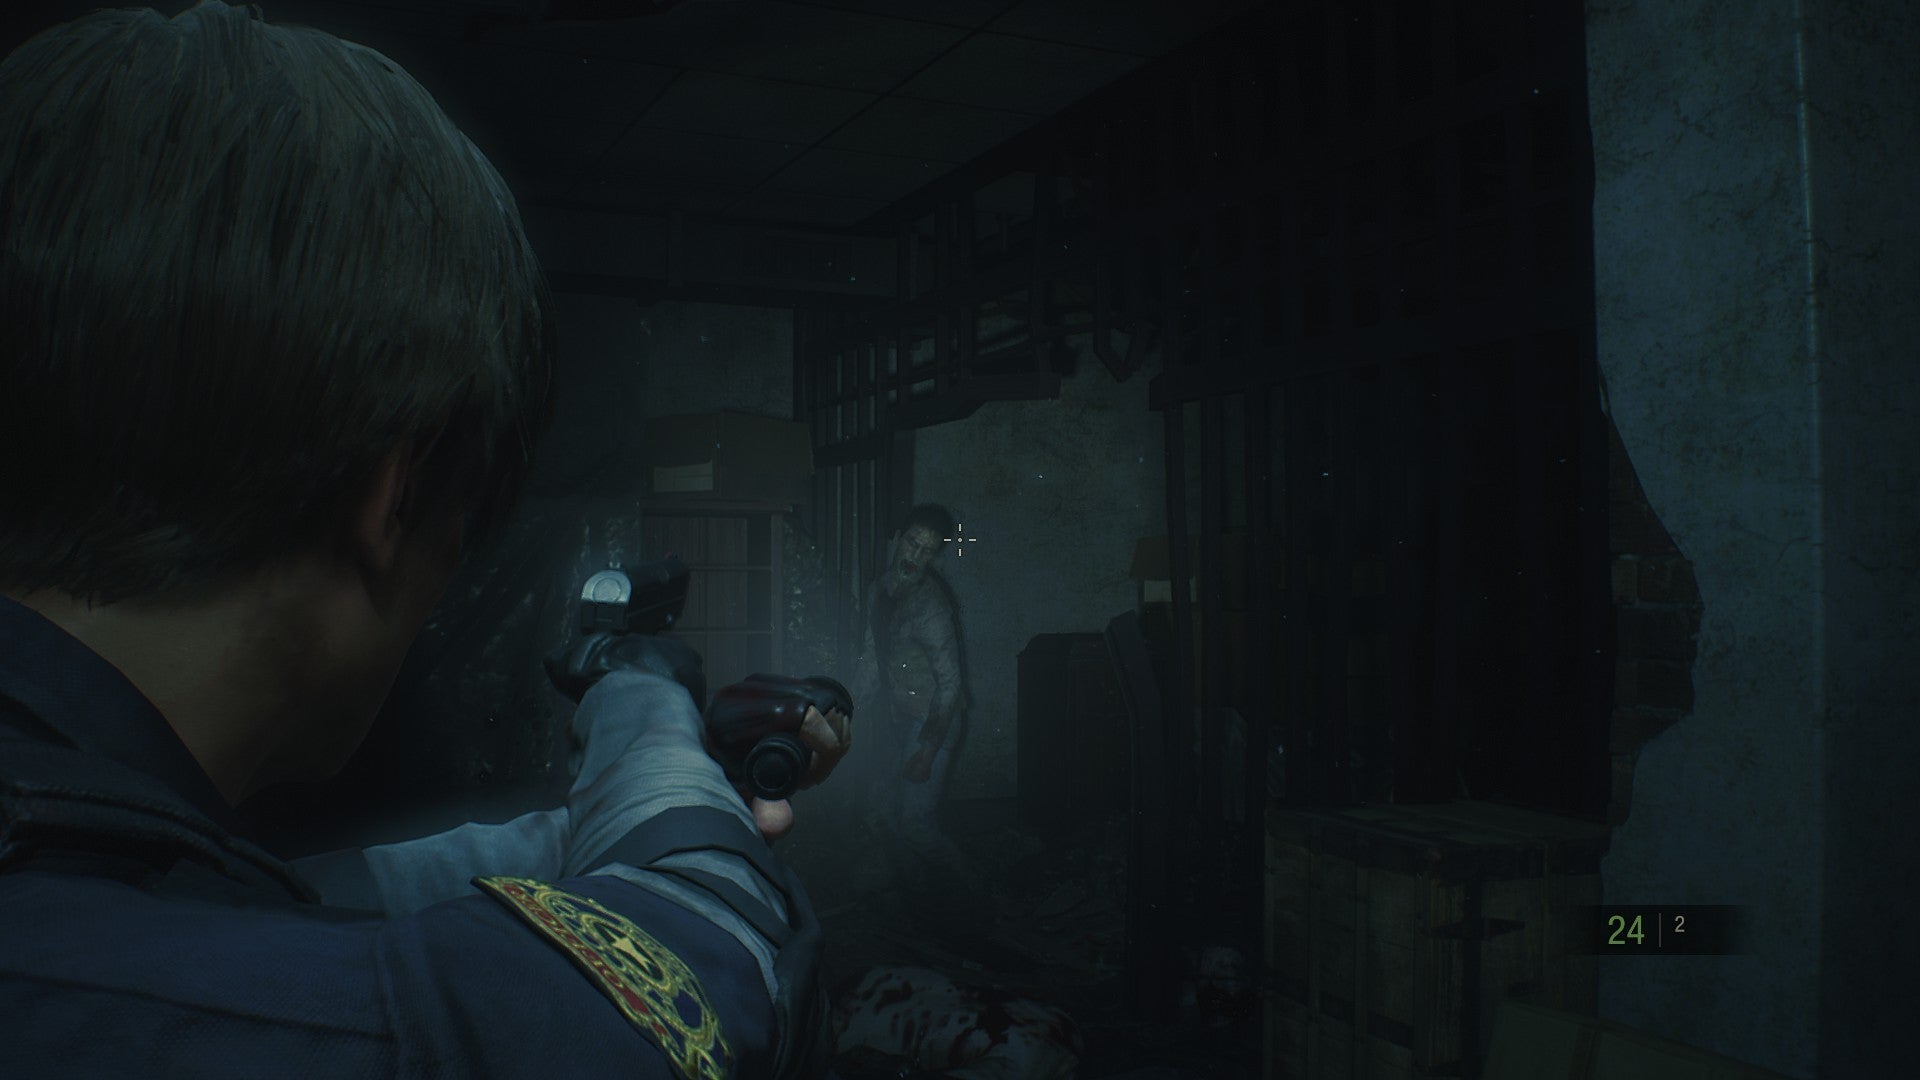 Resident Evil 2 (2019) review: This stunning remake revives